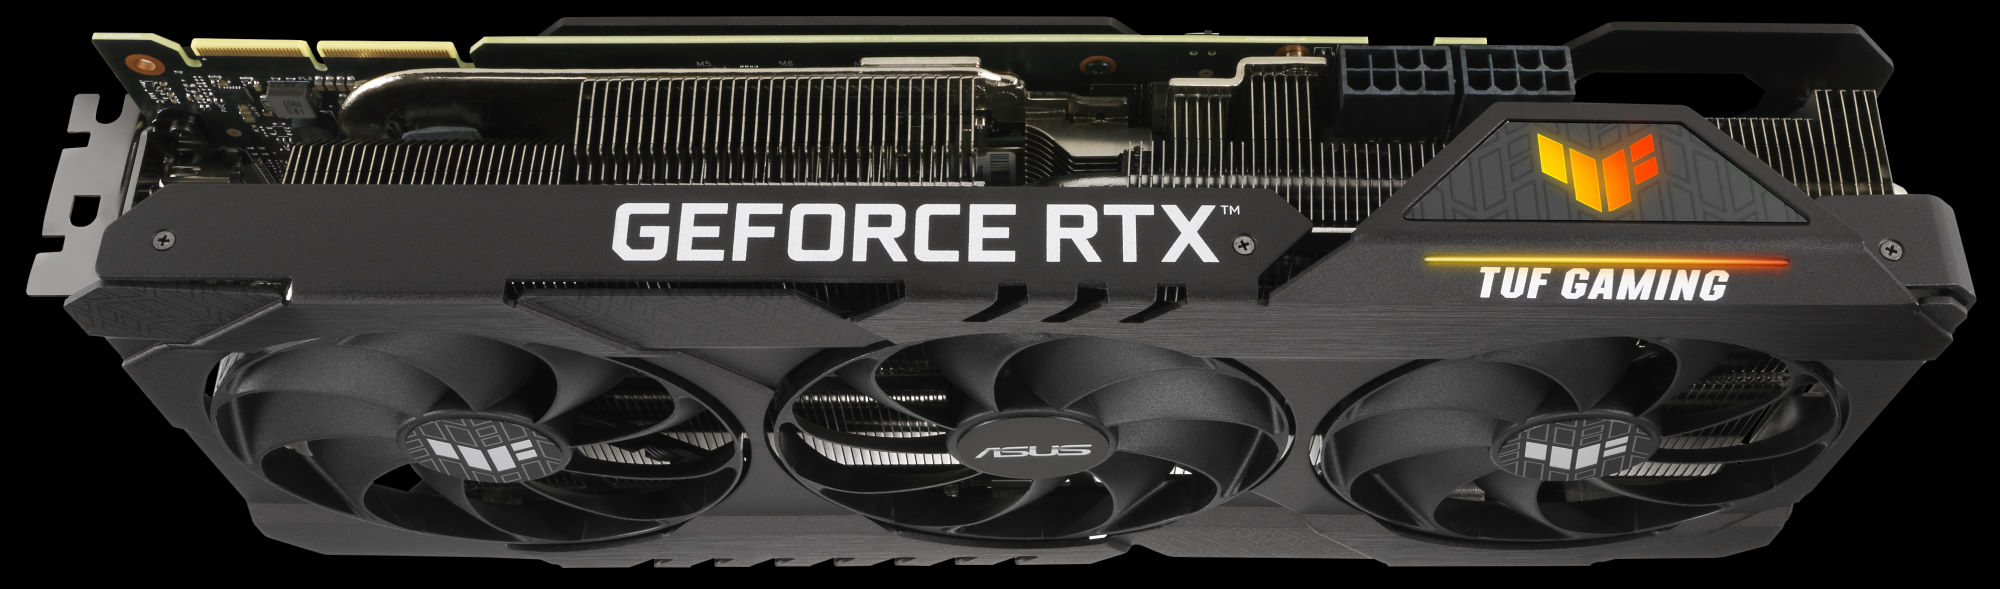 1598956815332 - Asus Nvidia Geforce RTX 3090 & 3080 Press Release